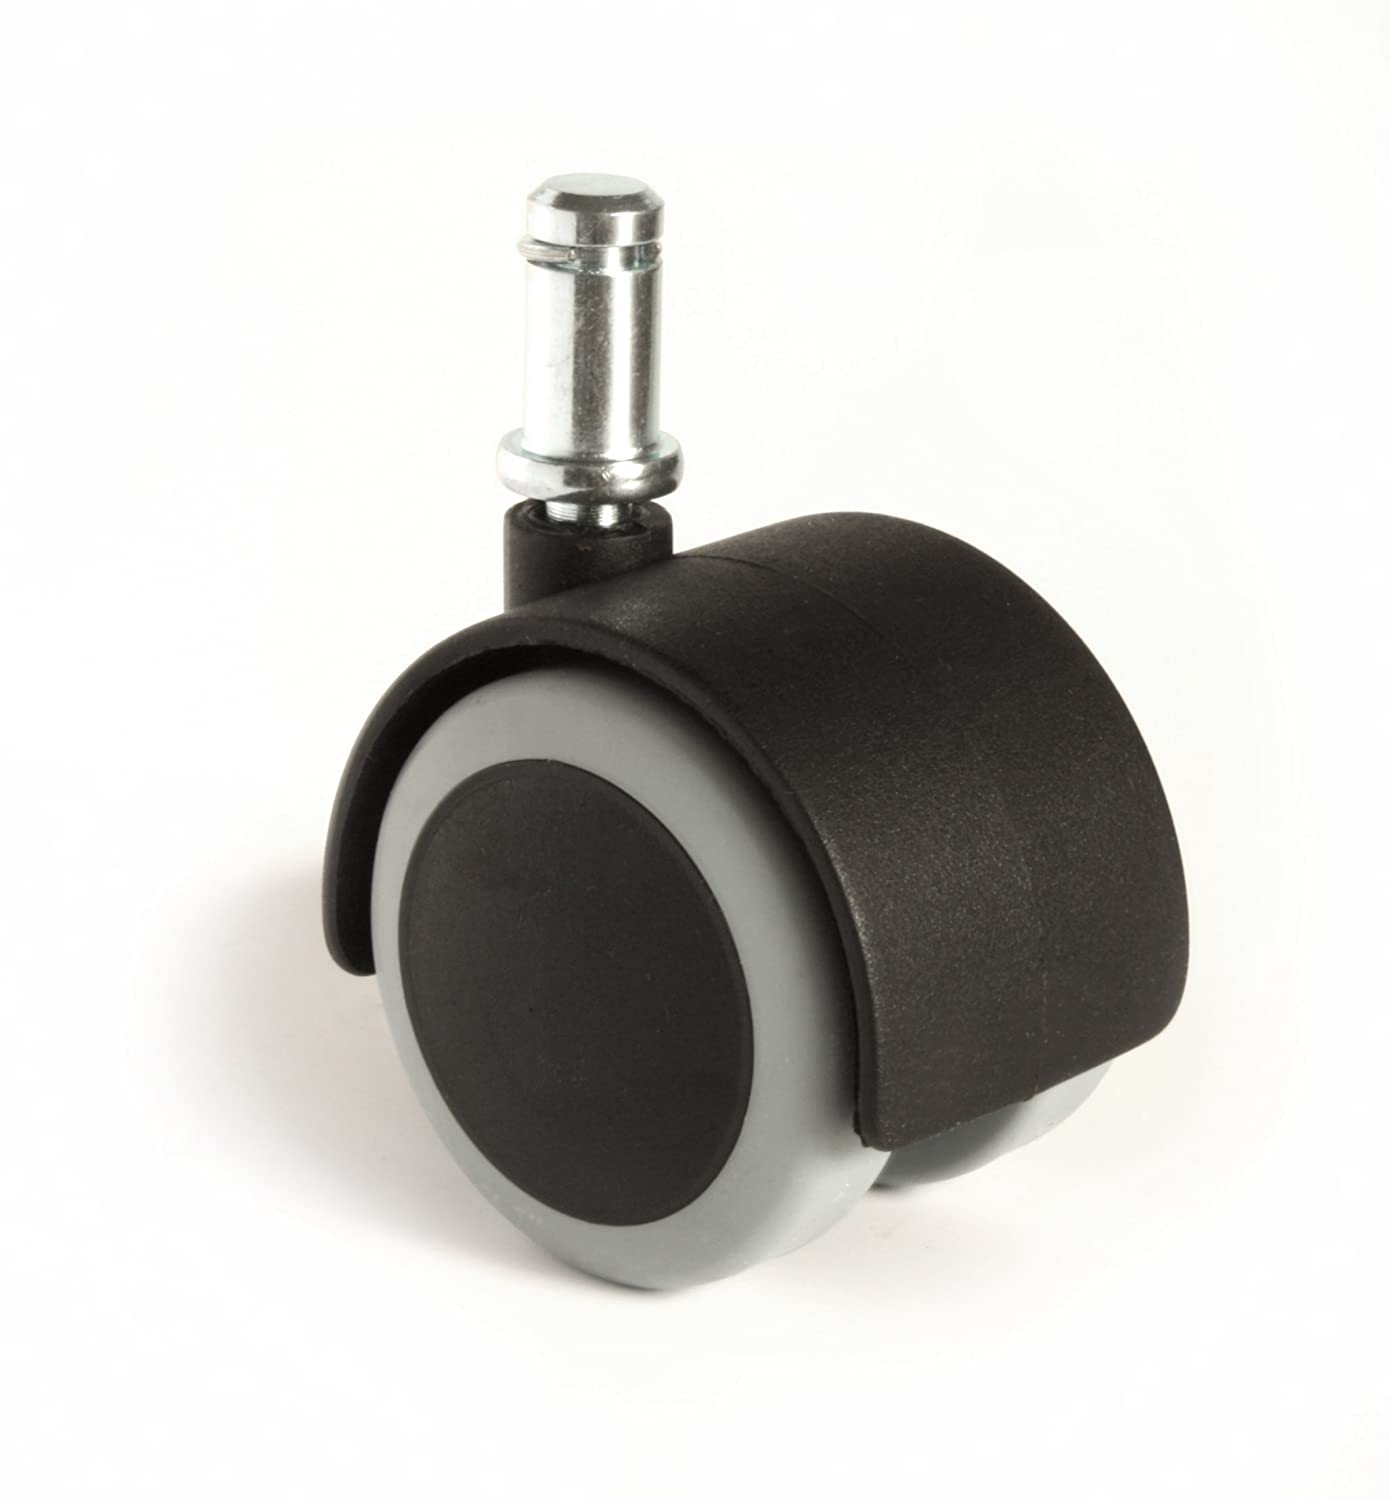 Slipstick Cb680 Rubber Caster Wheels Set Of 5 New And